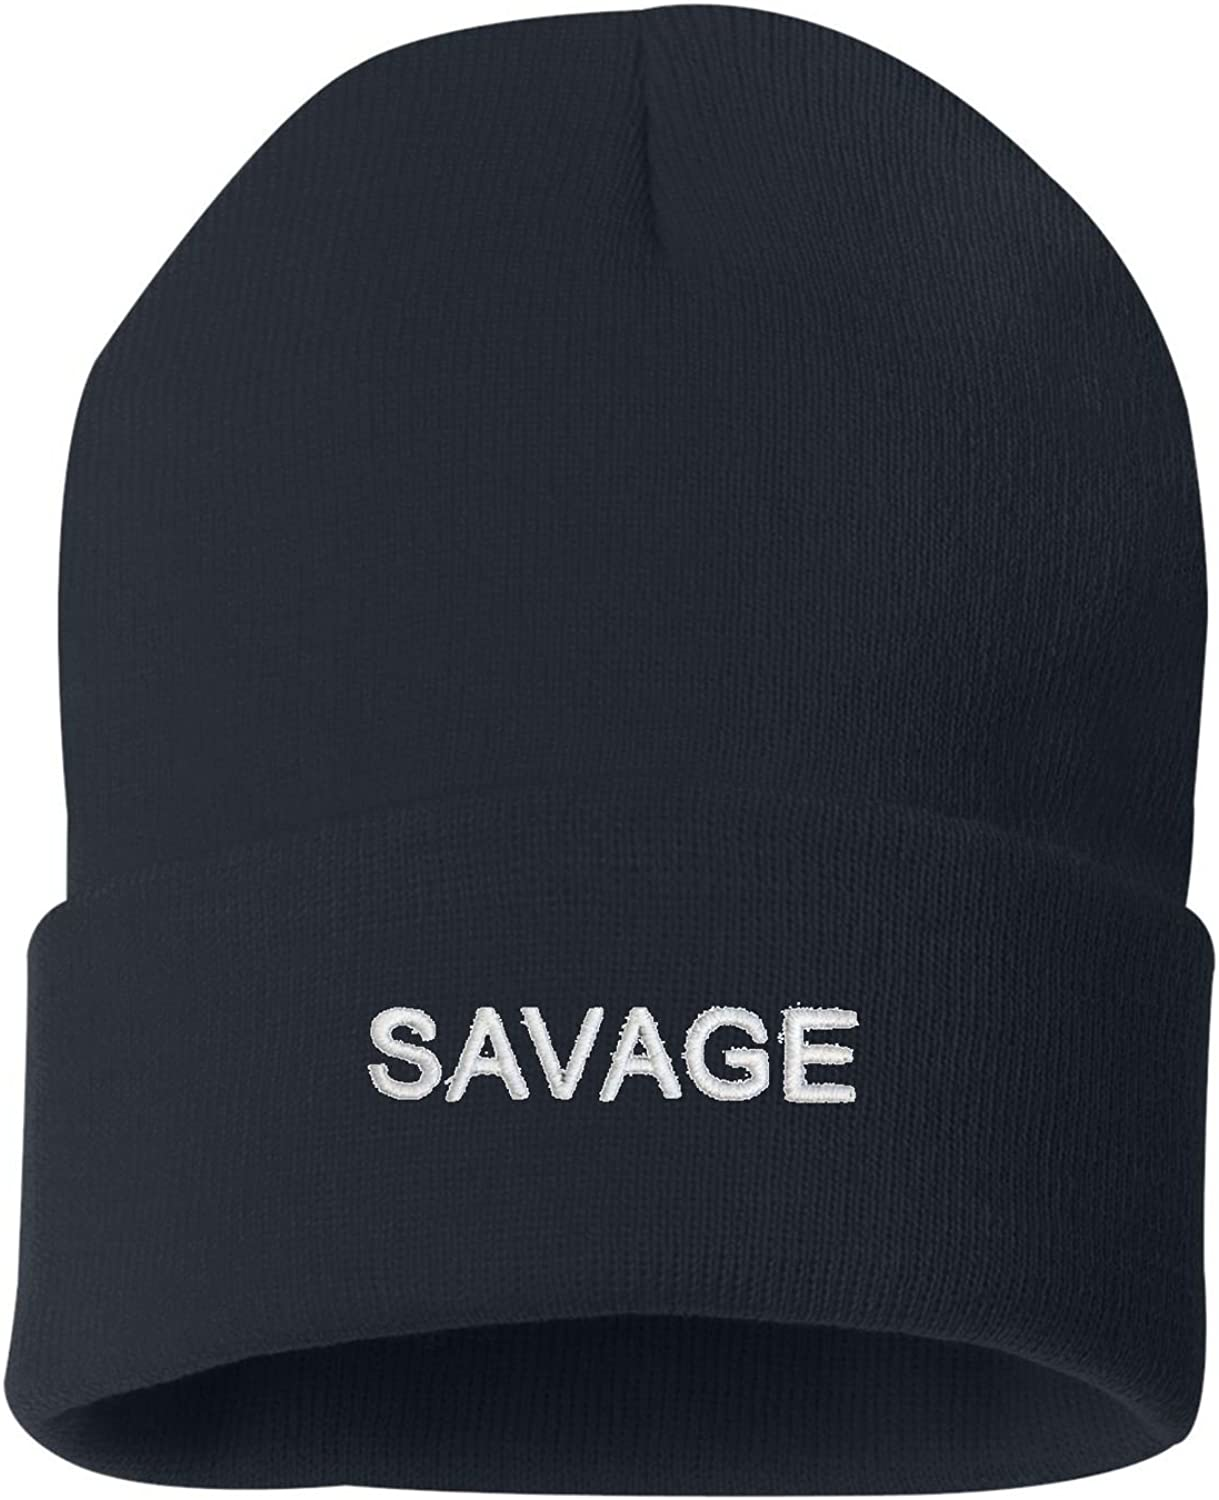 Go All Out Adult Savage Embroidered Knit Beanie Pom Cap